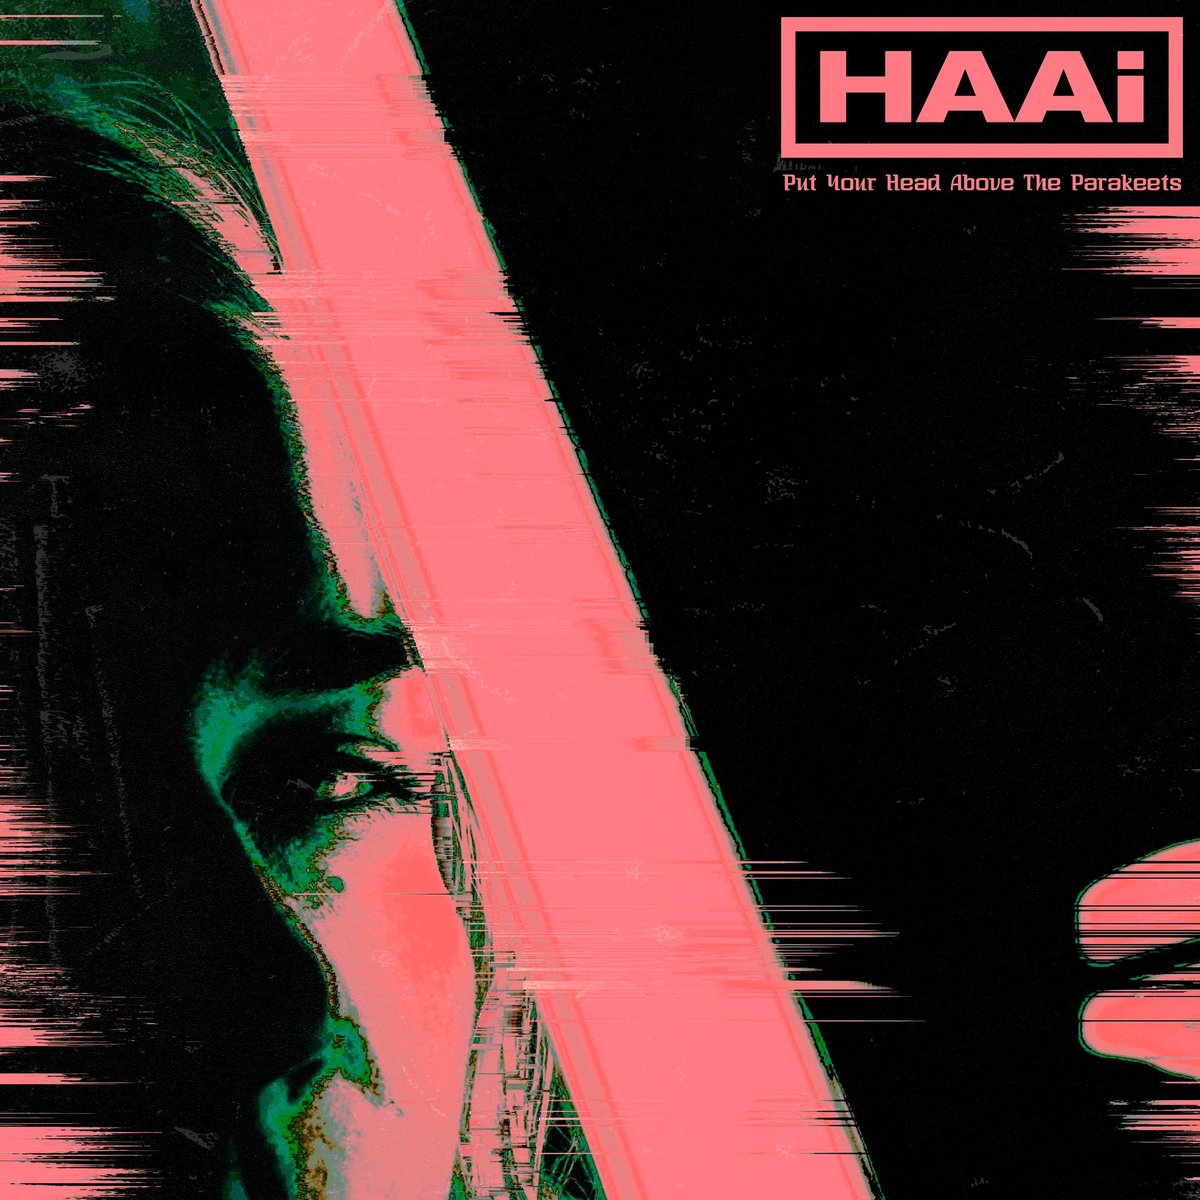 HAAi – Put Your Head Above The Parakeets